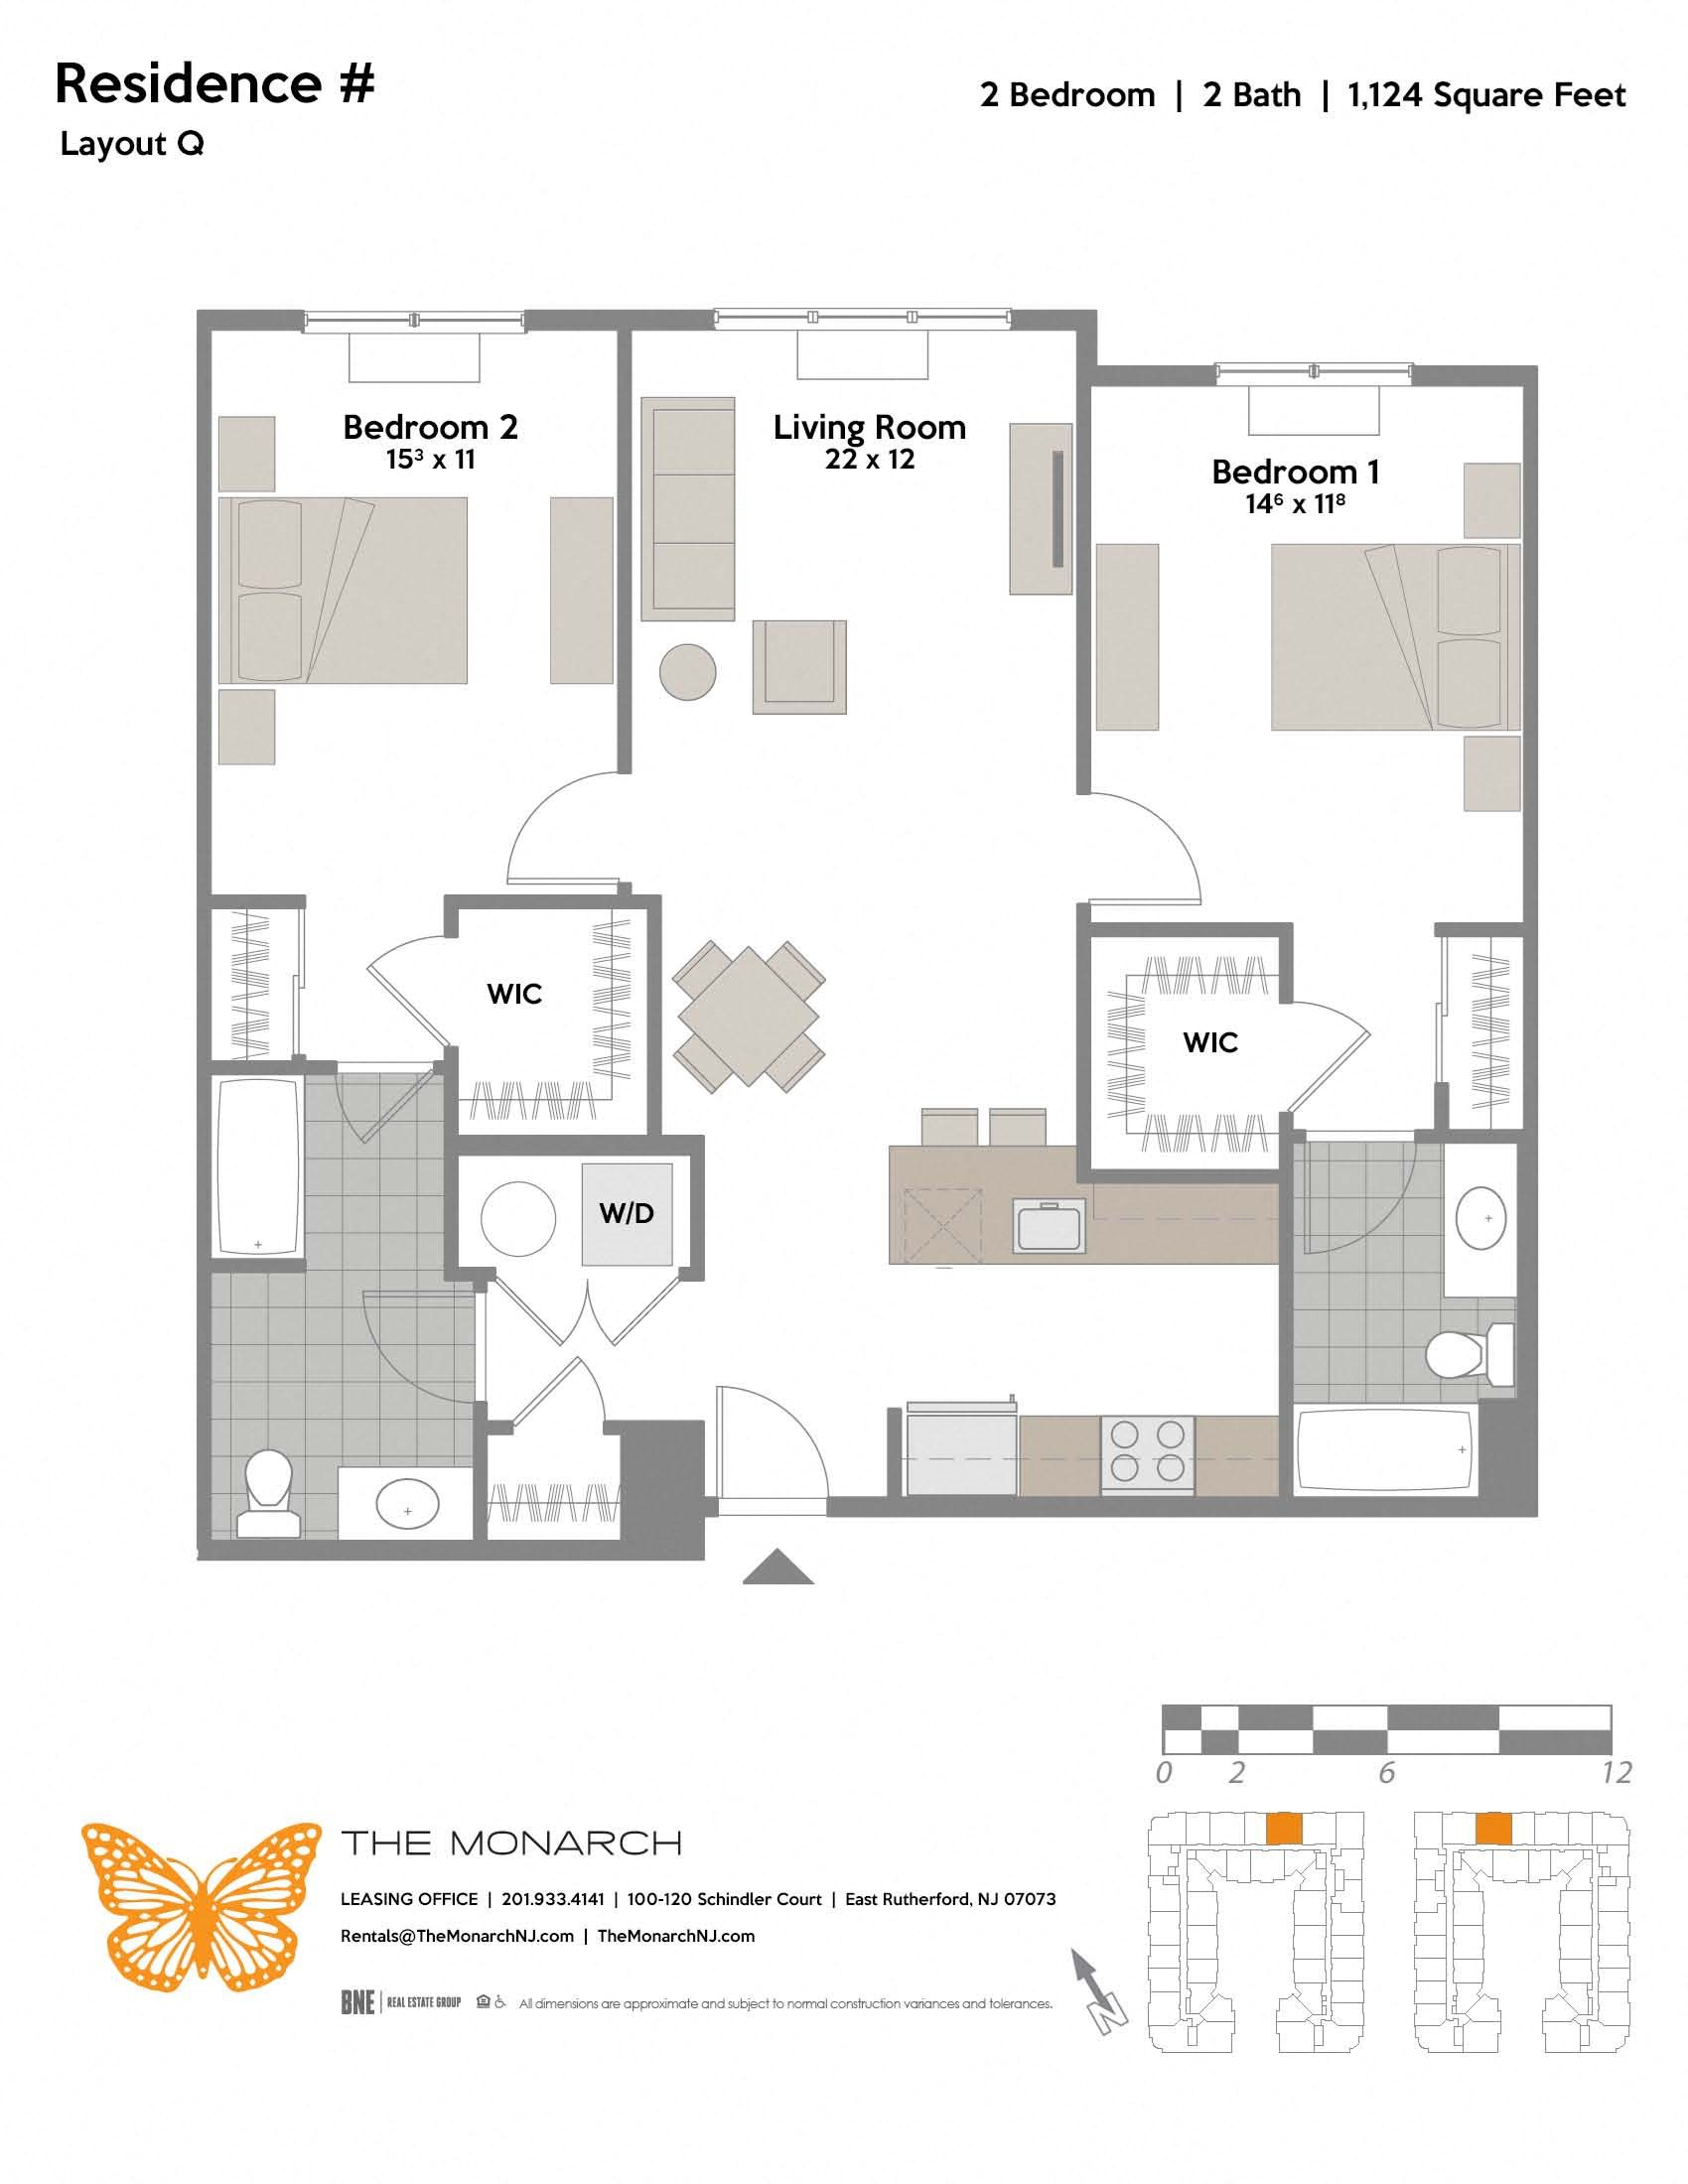 Layout Q Floor Plan 7